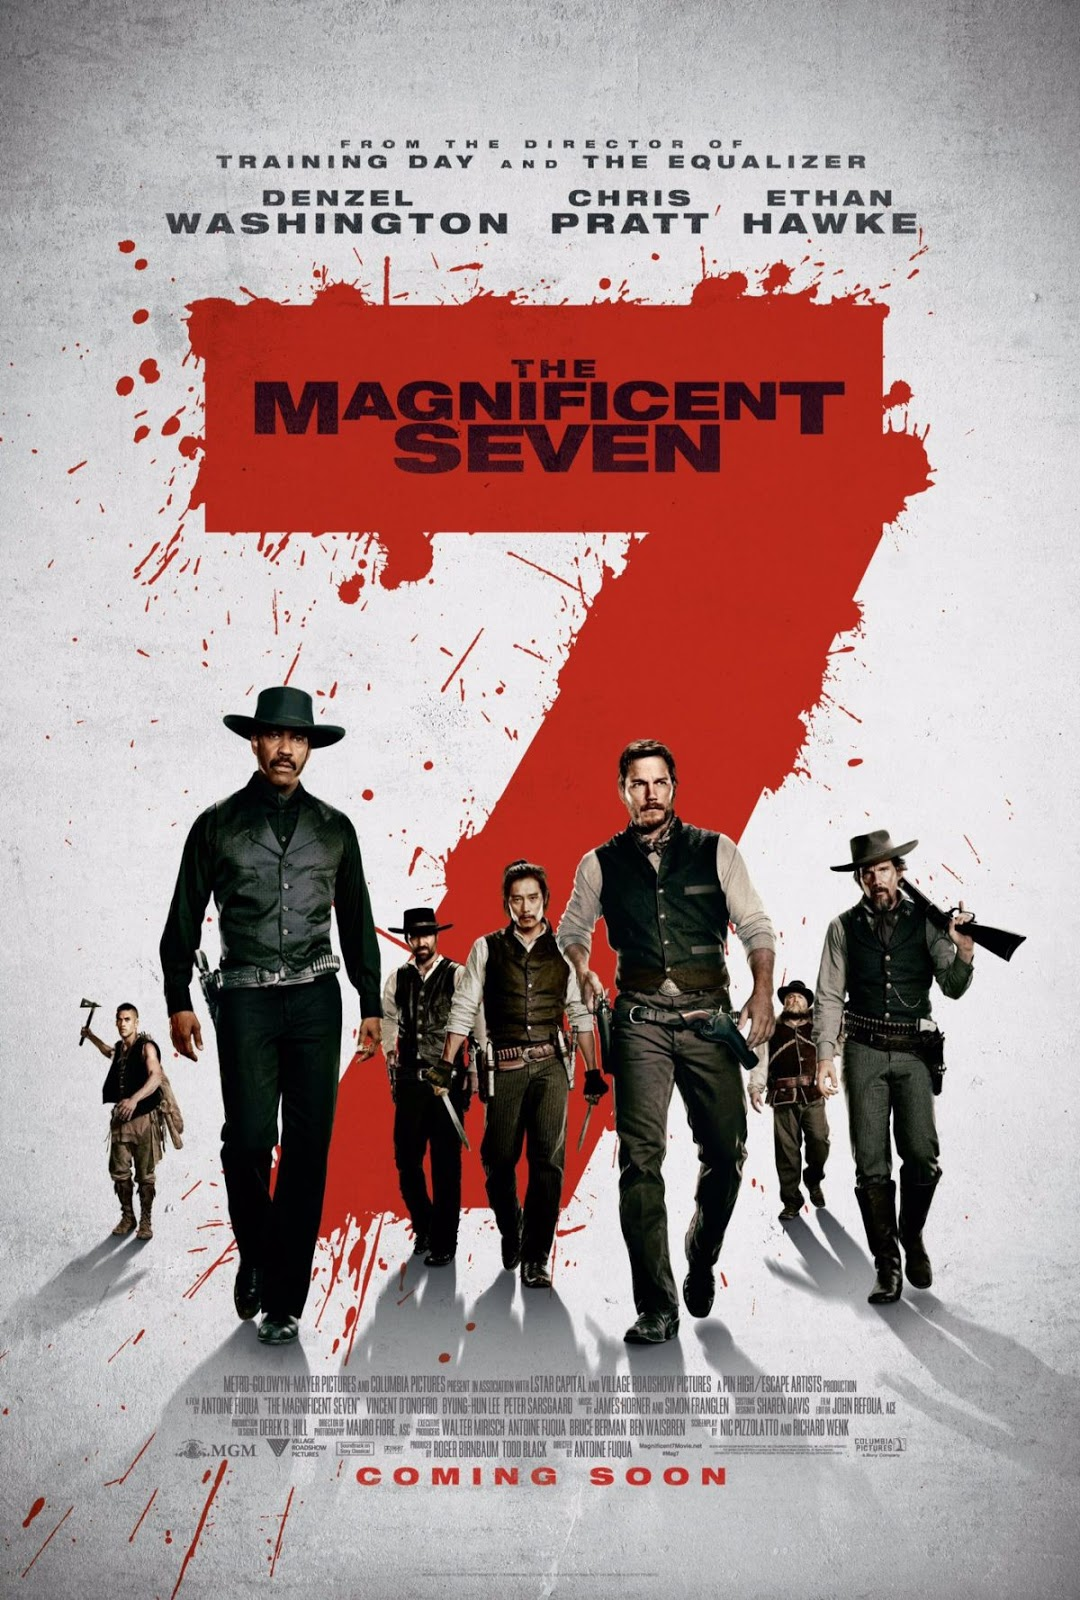 فيلم The Magnificent Seven 2016 مترجم 3